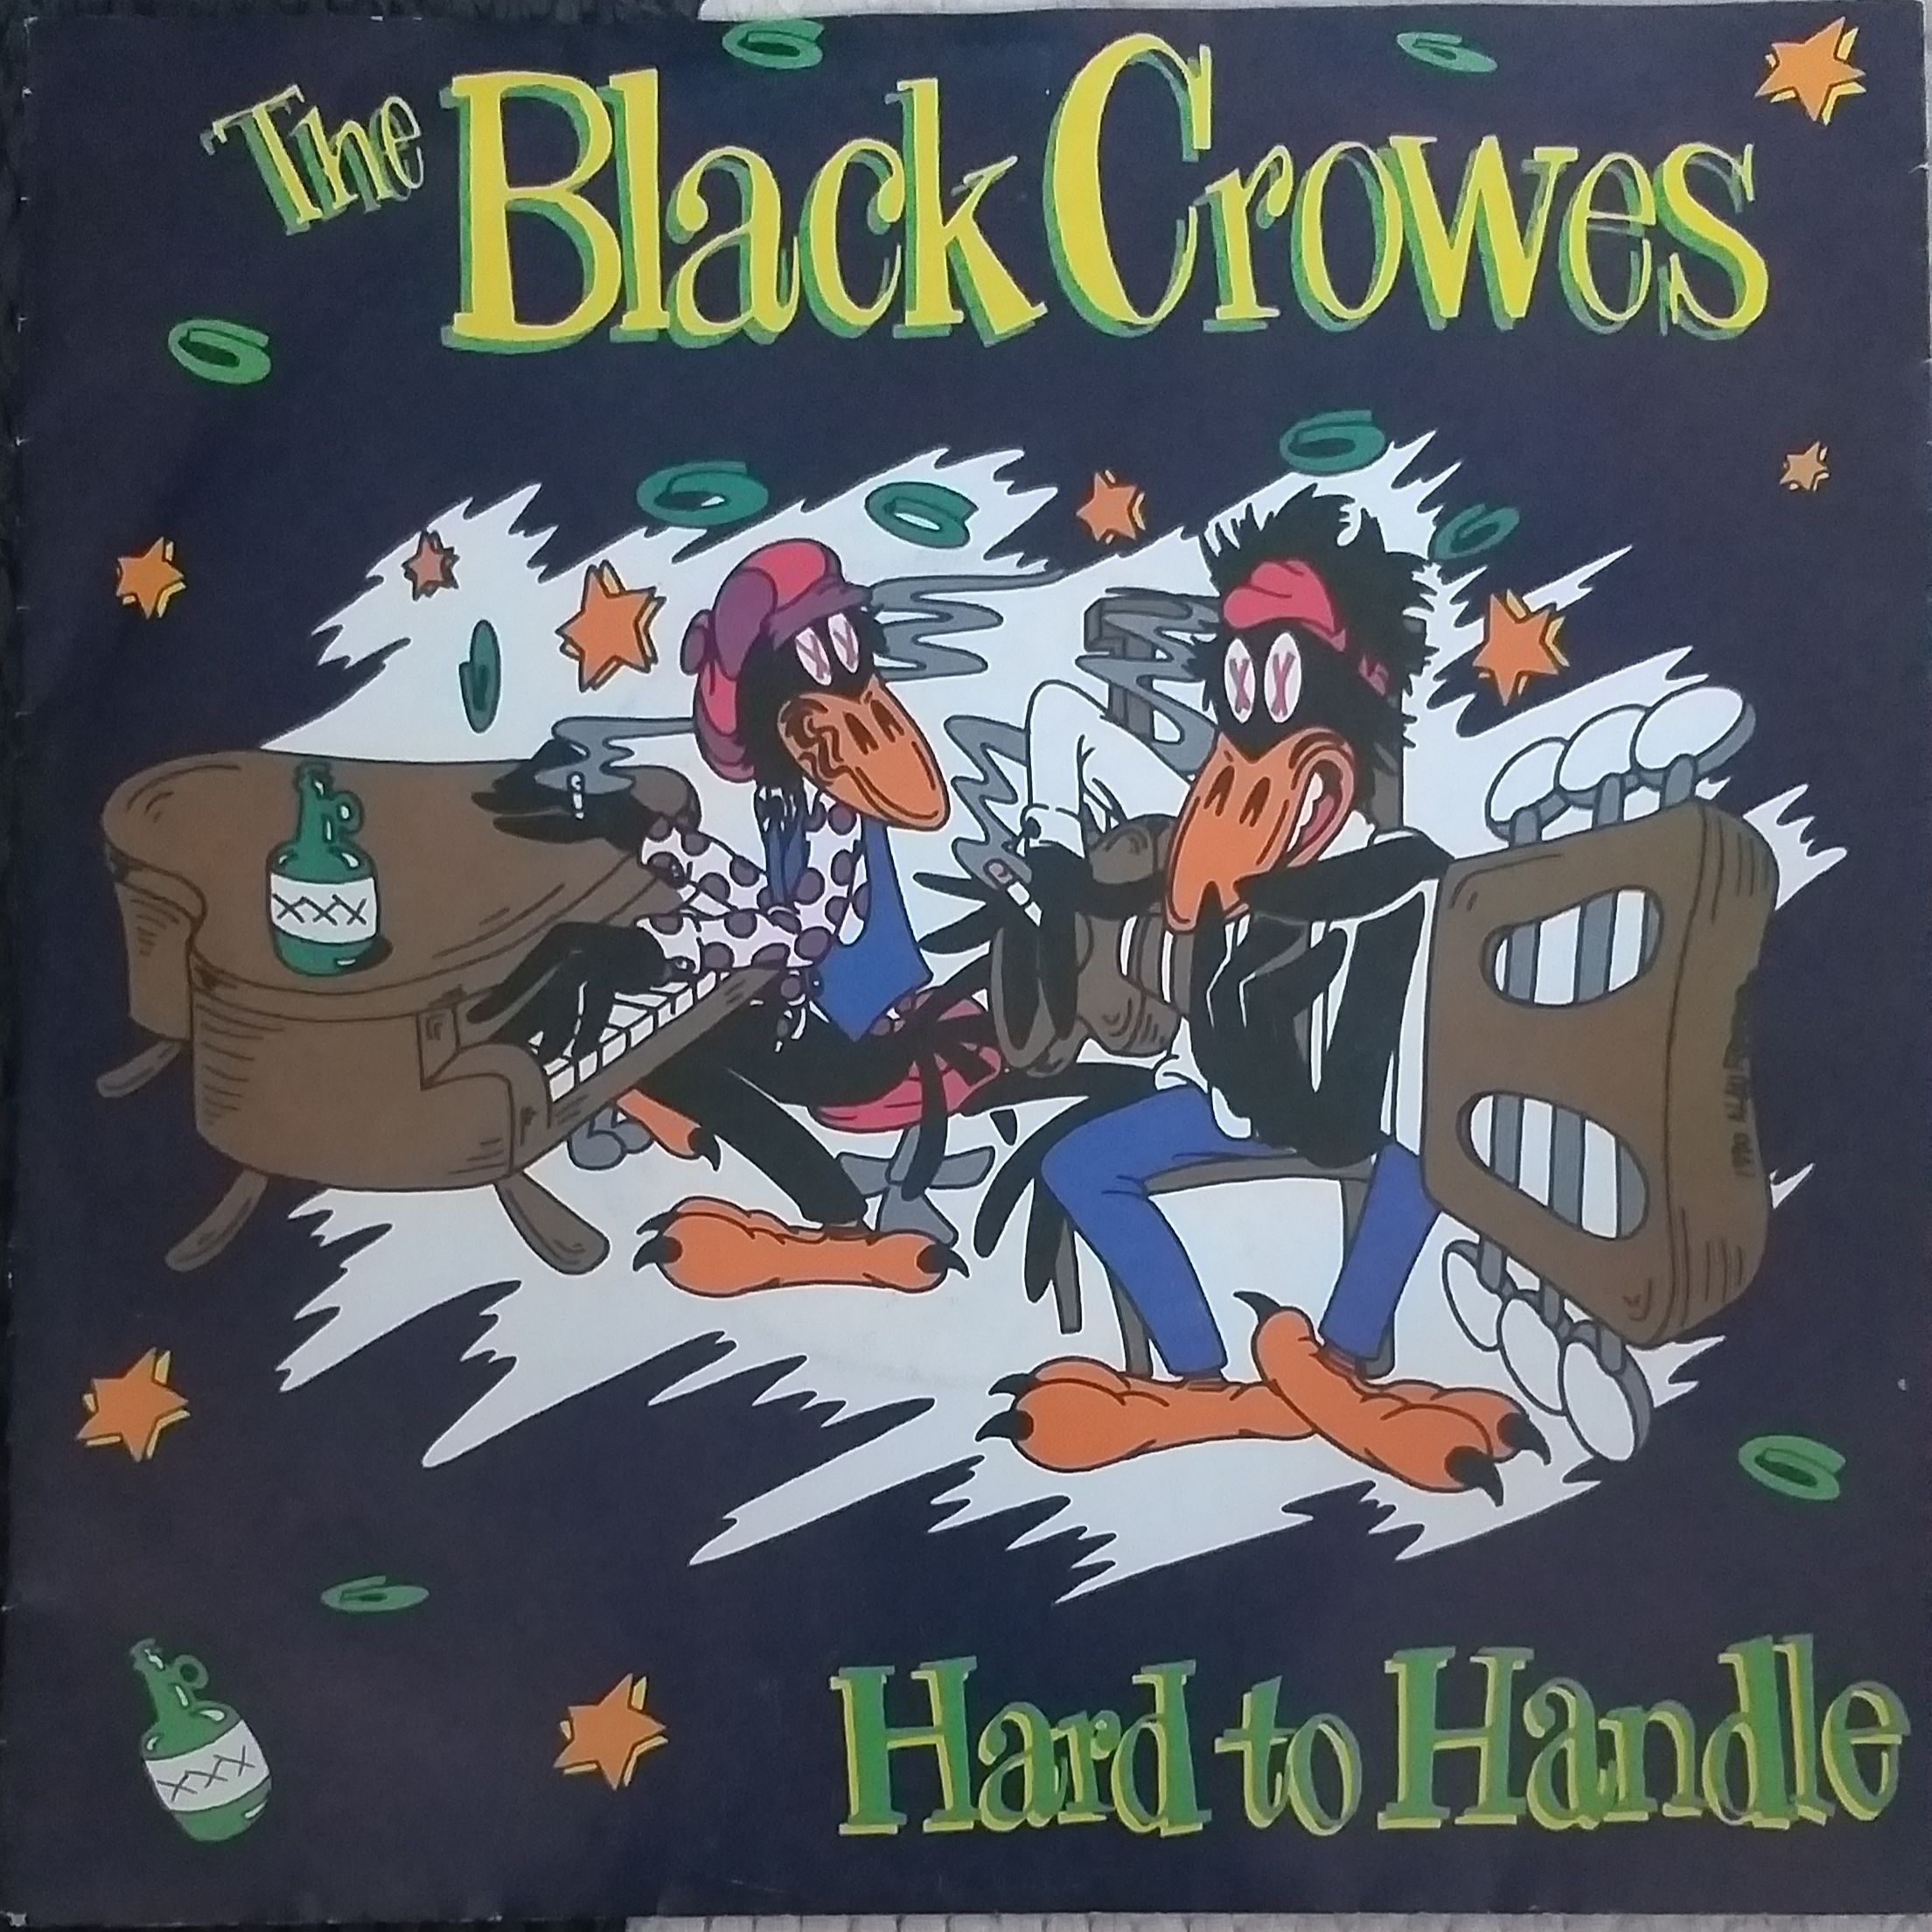 The black crowes Hard to handle LP undefined